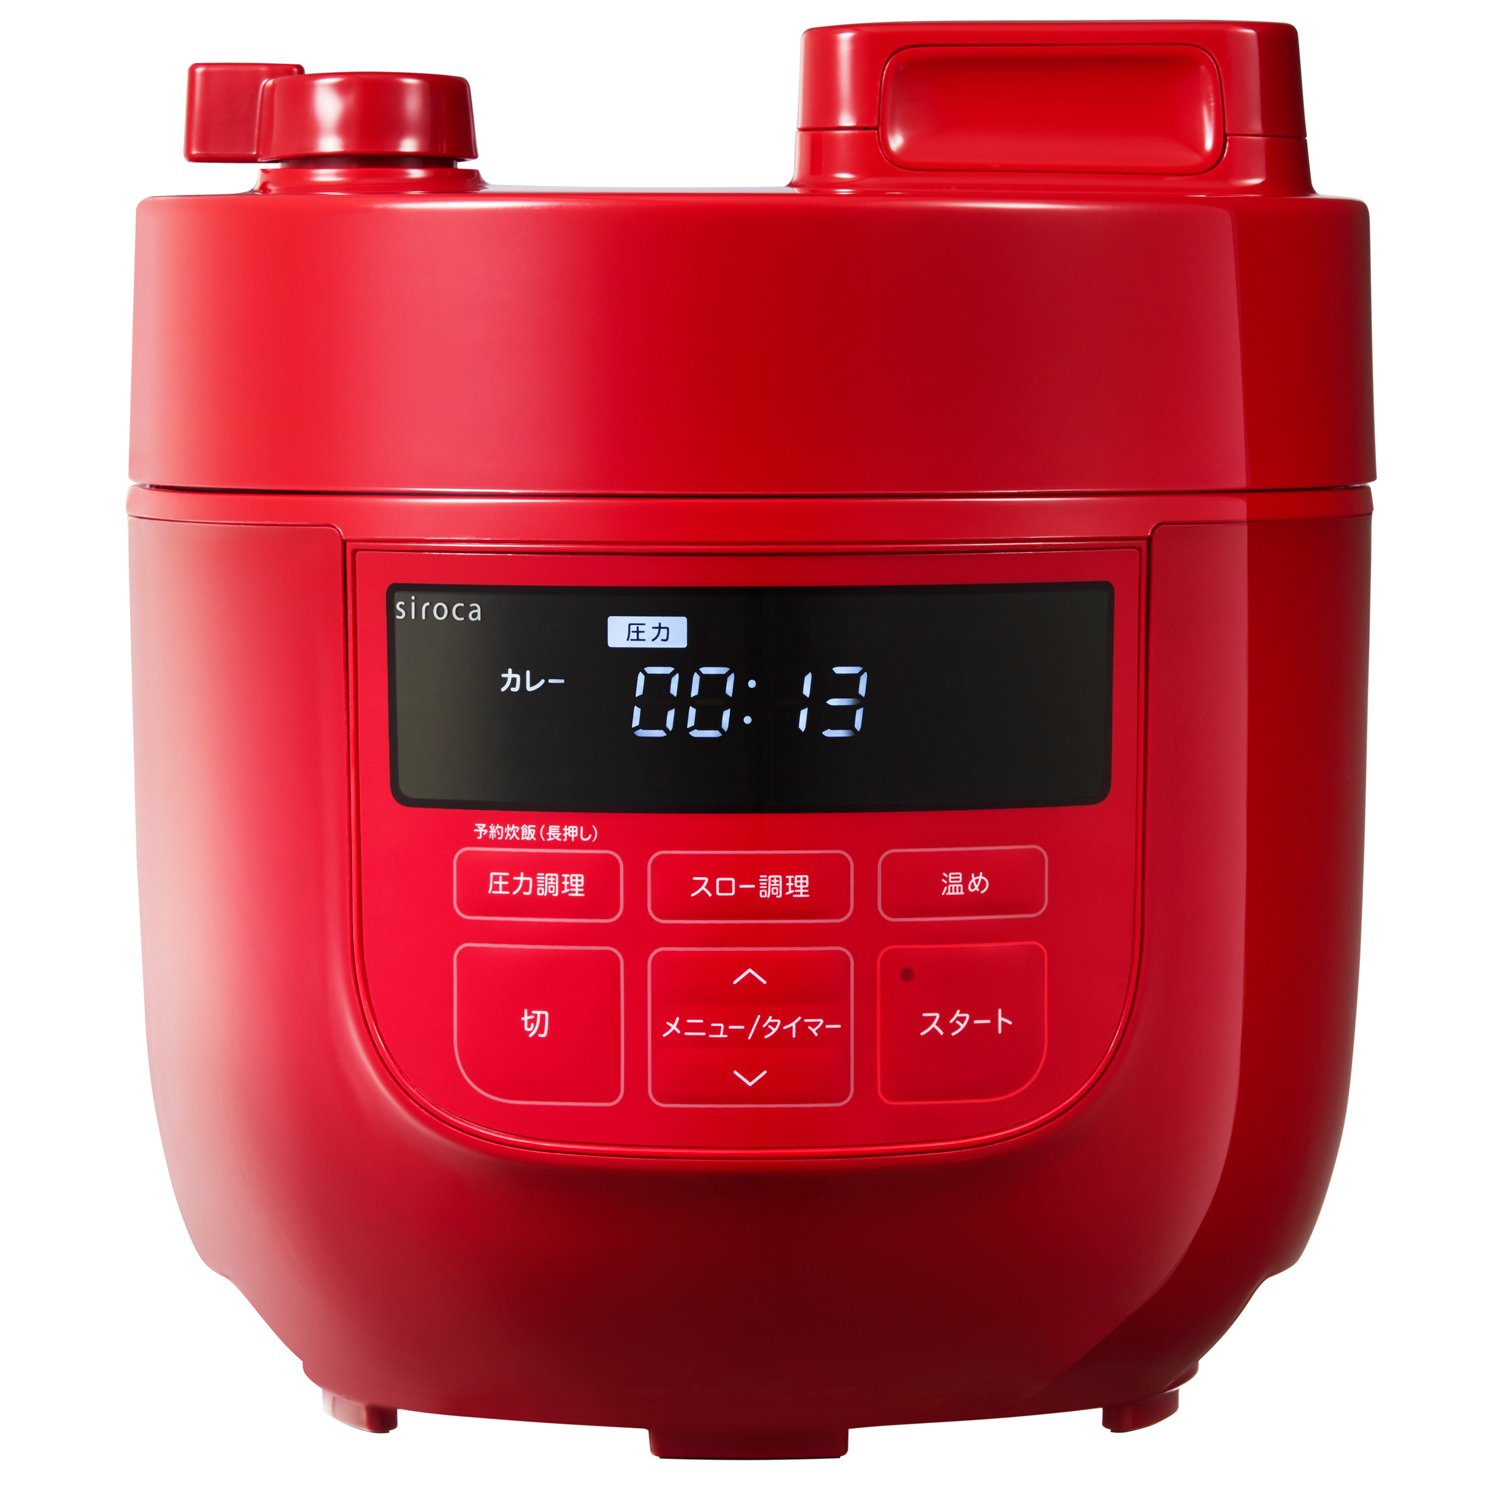 siroca Electric Pressure Cooker SP-D131(R) (Red)【Japan Domestic genuine products】